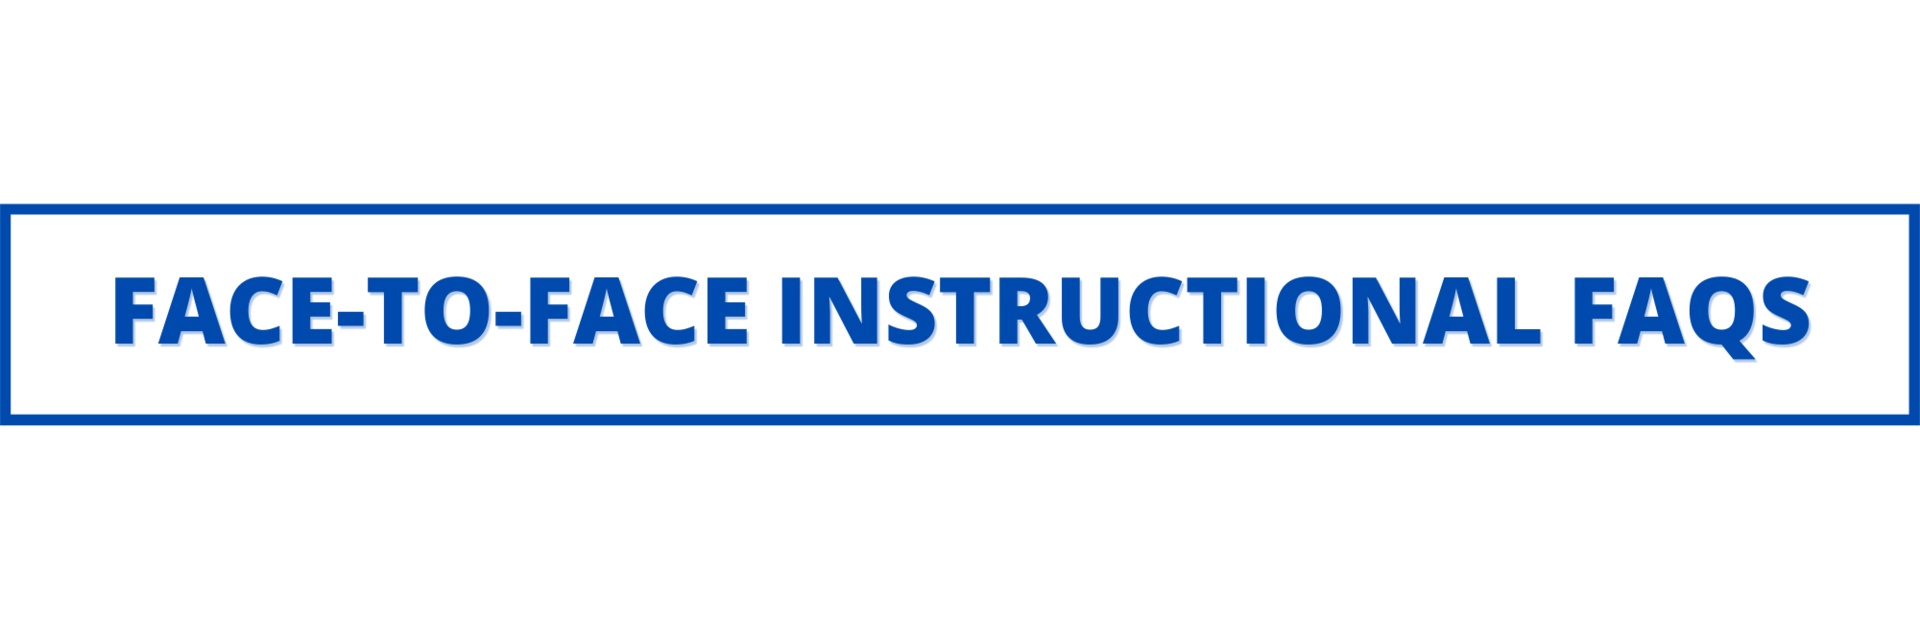 face to face instructional FAQS